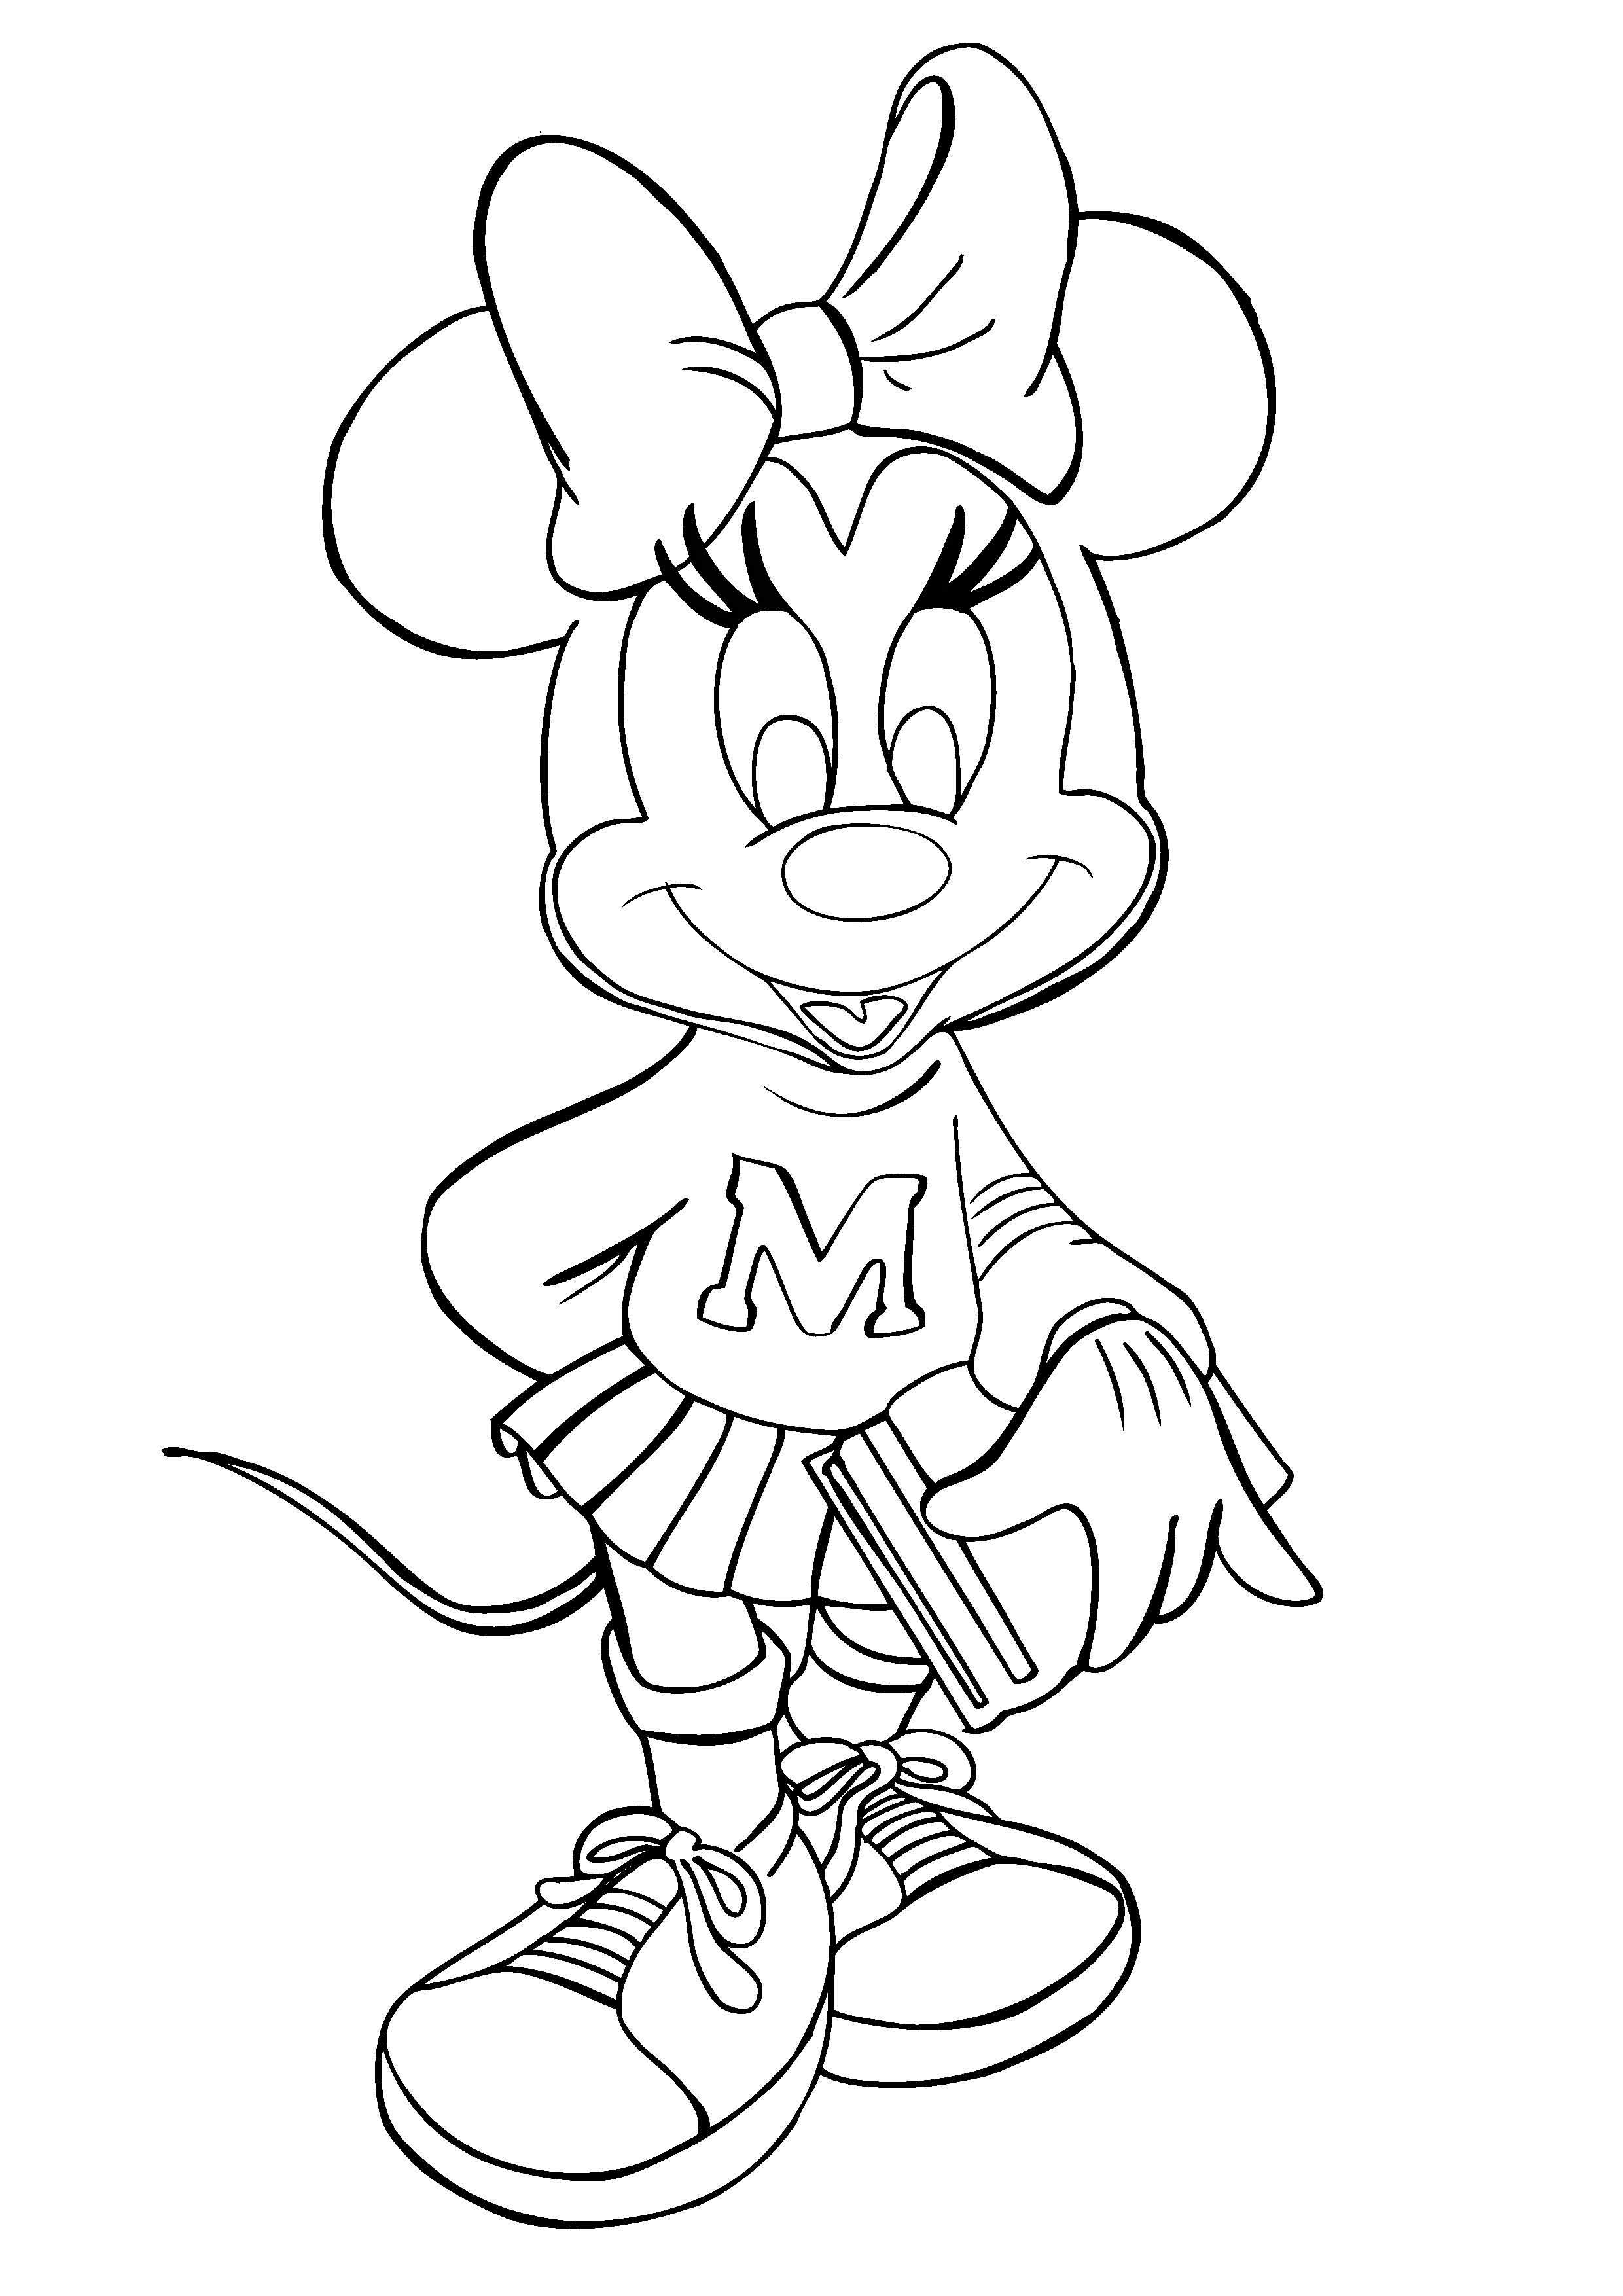 minnie mouse coloring template 9 cute minnie mouse coloring pages psd jpg gif free coloring template mouse minnie